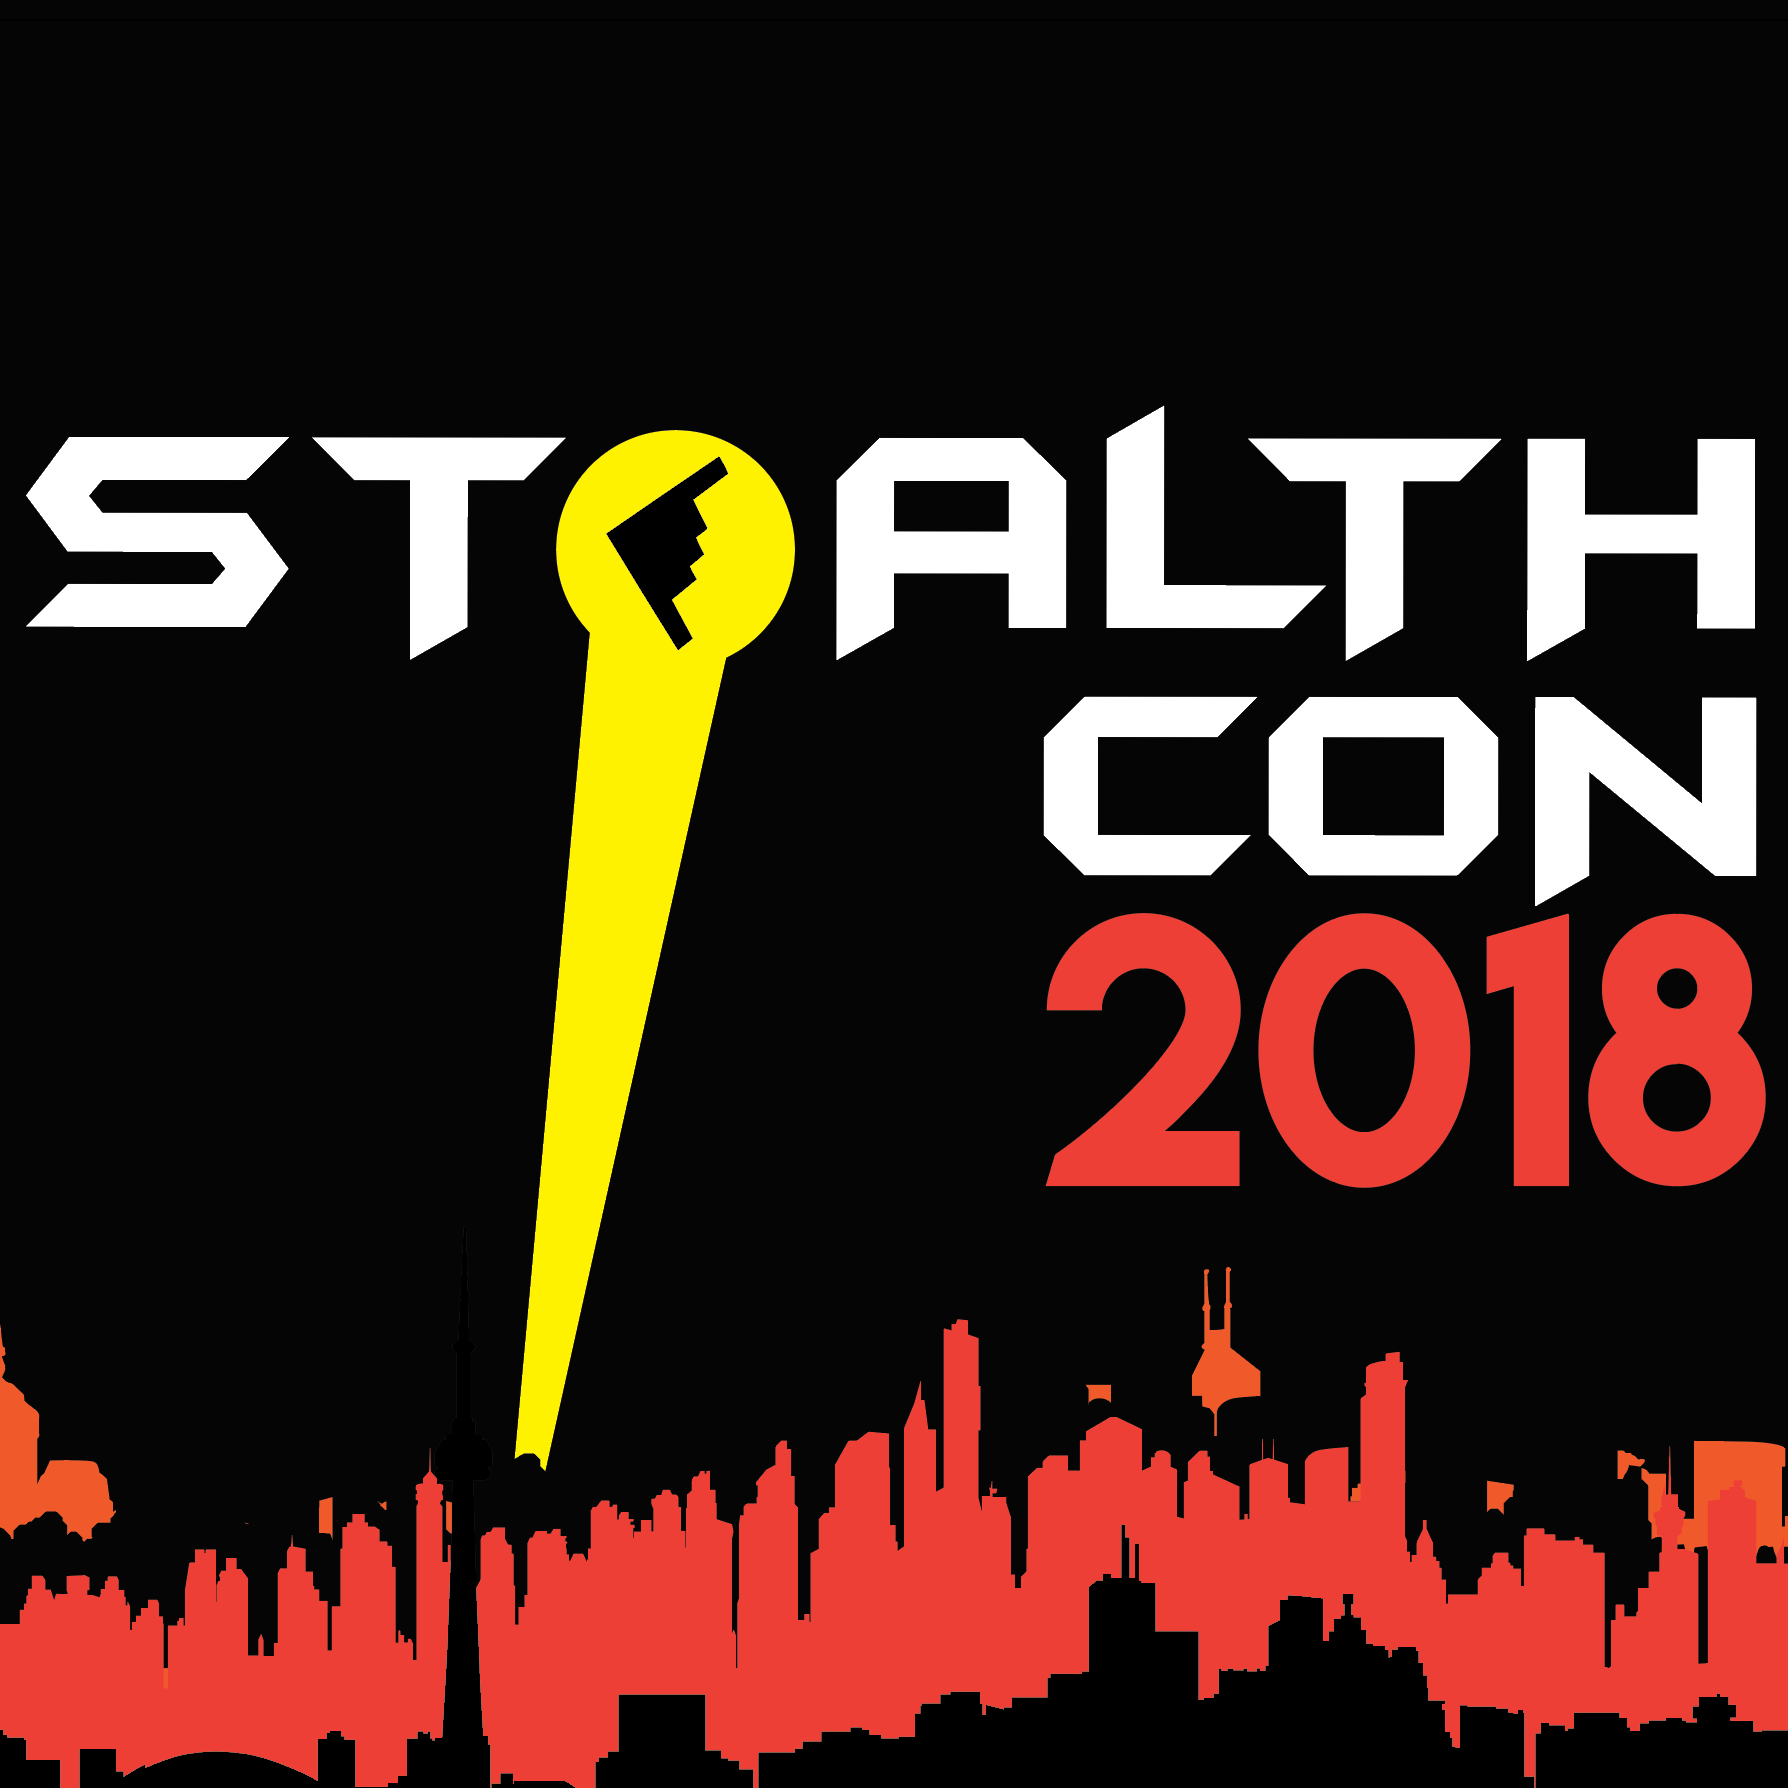 Stealth Con brings sense of community in third year